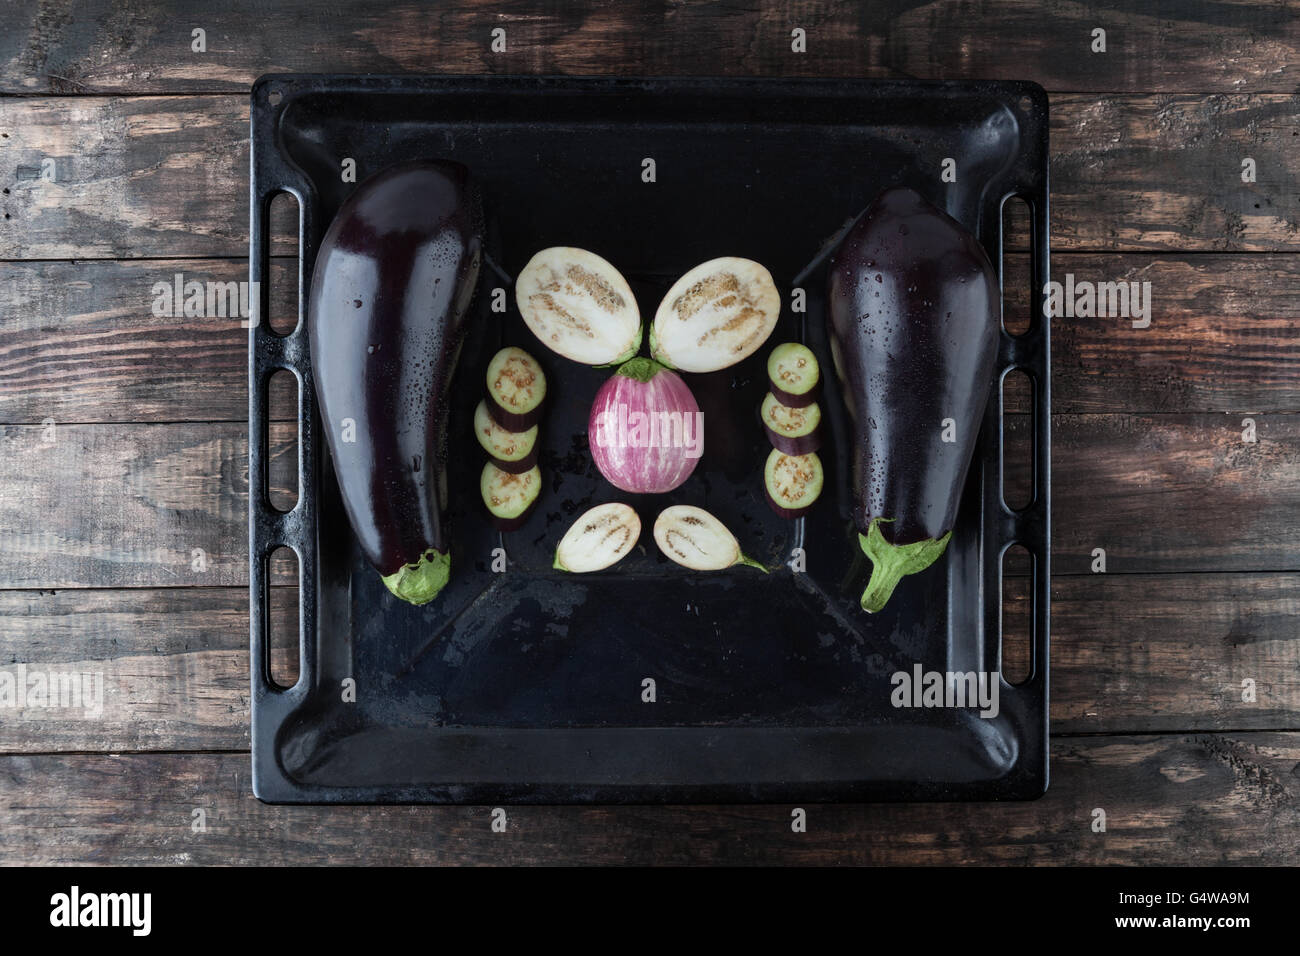 Whole and sliced eggplants arranged on rustic baking tray. Top view with copy space - Stock Image